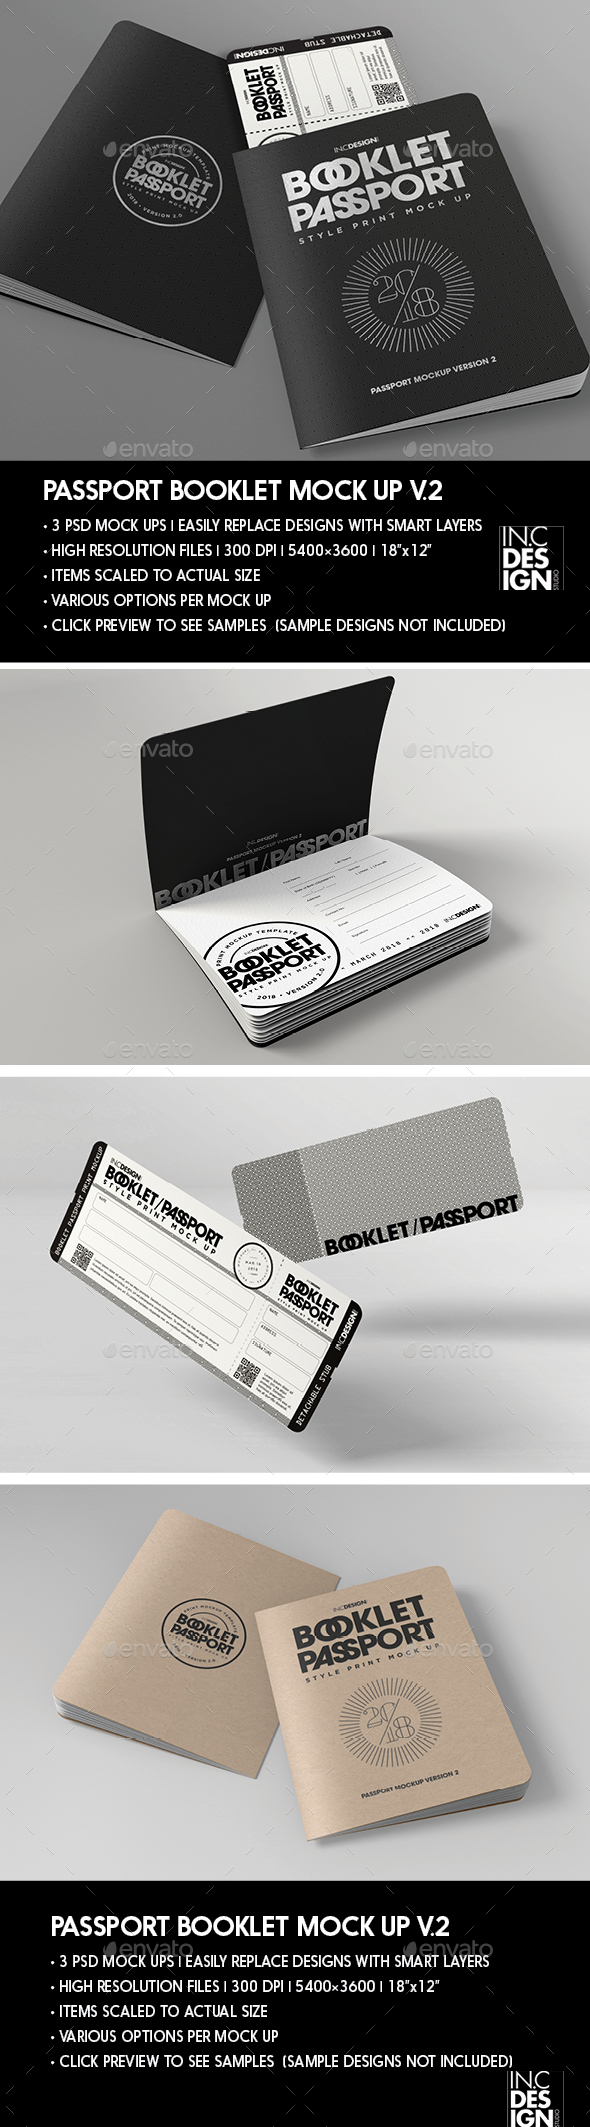 Passport Booklet Boarding Pass MockUp v.2 - Print Product Mock-Ups